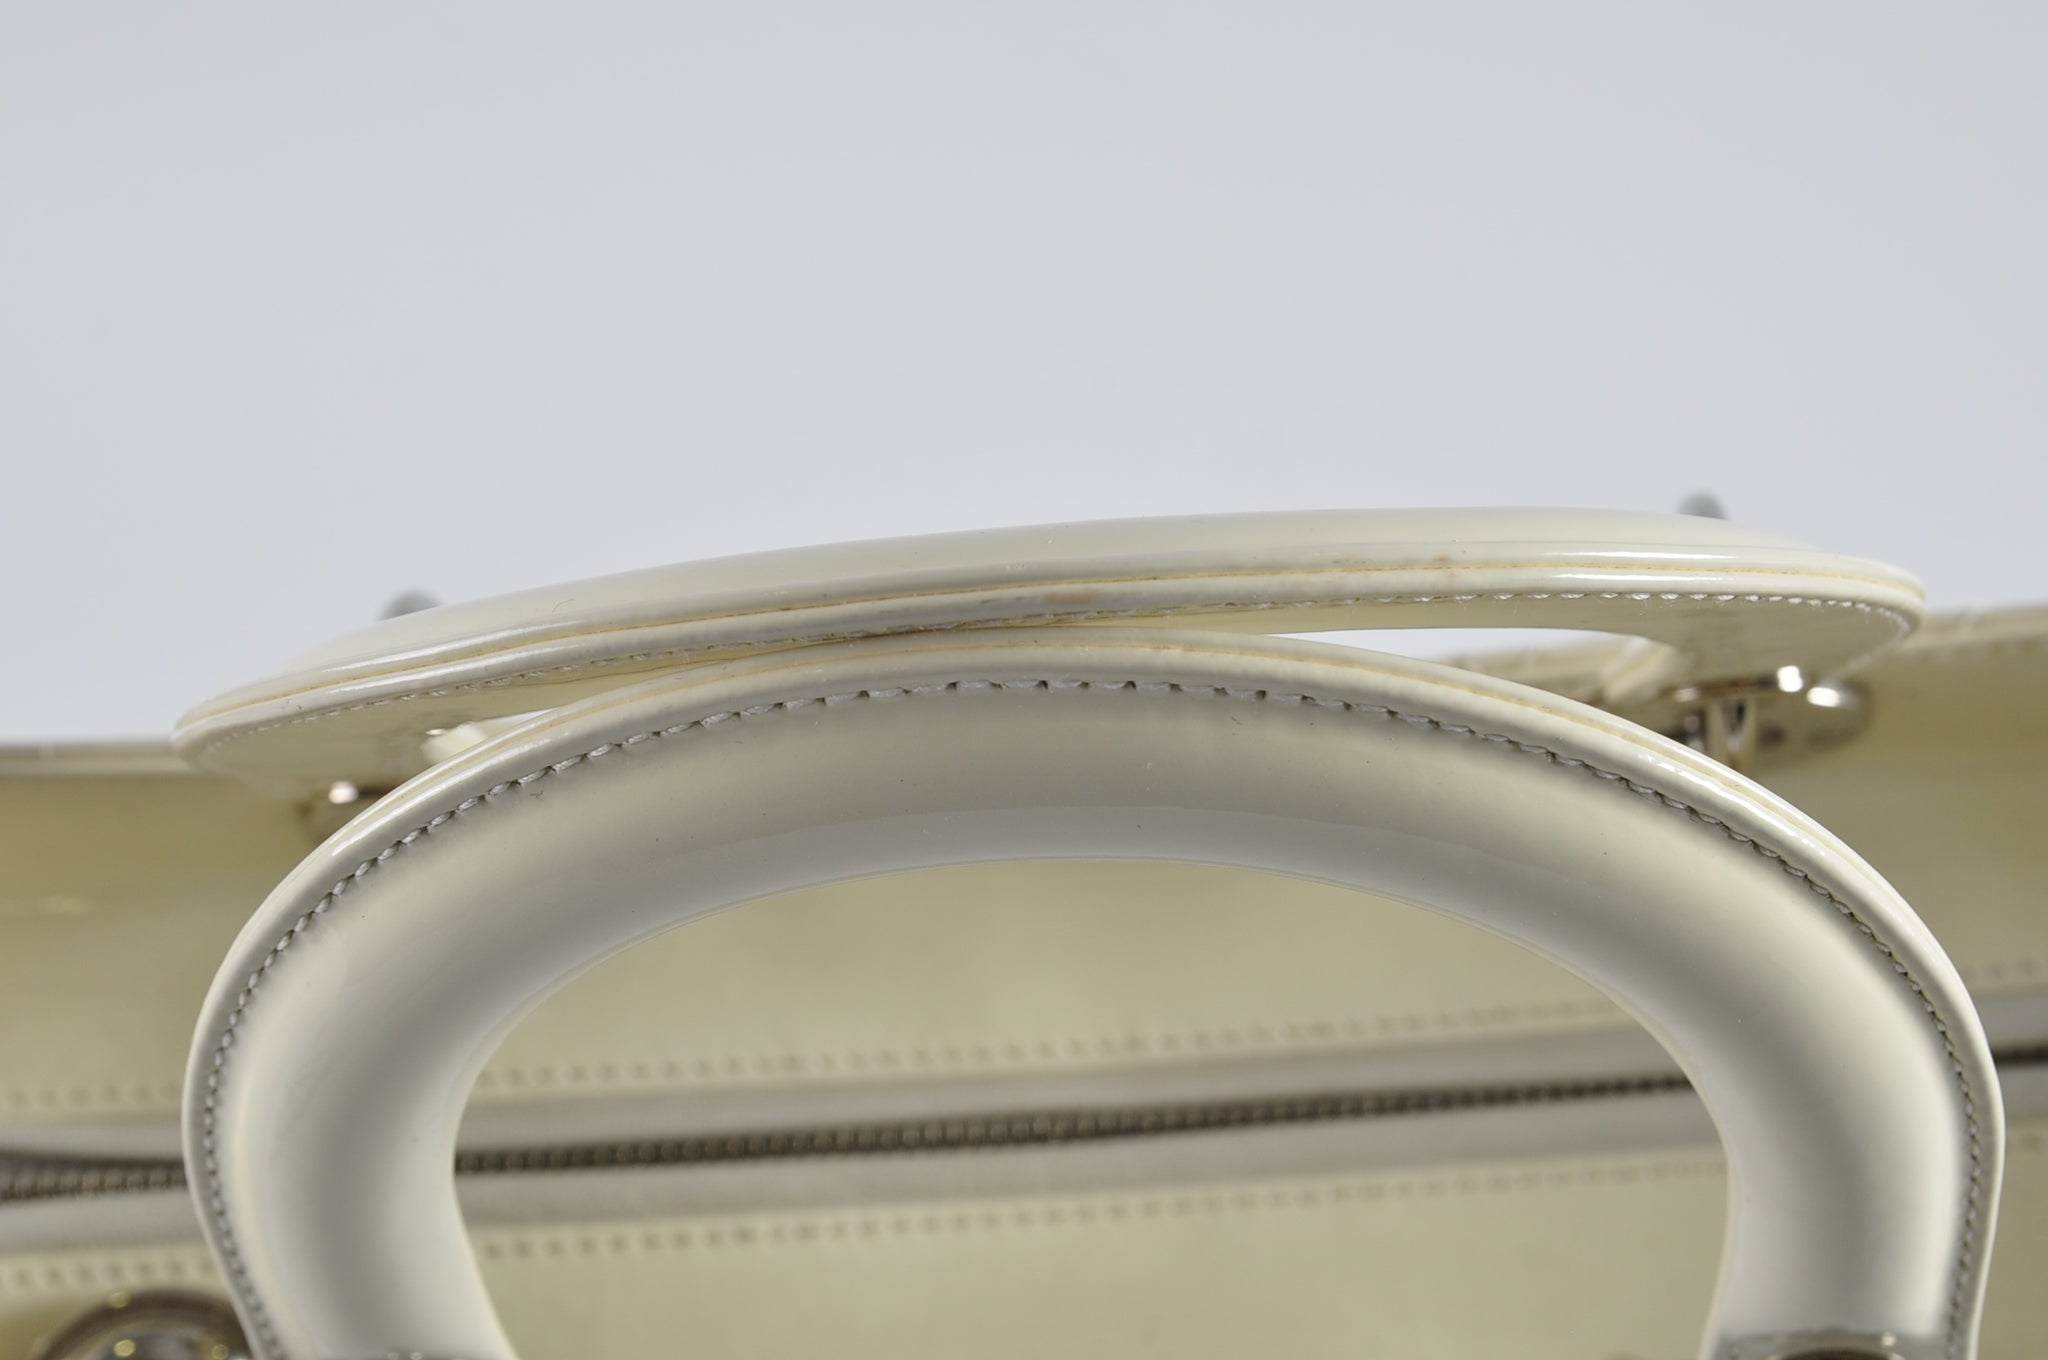 Christian Dior Lady Dior Large White Patent SHW 05-MA-0180 - Glampot